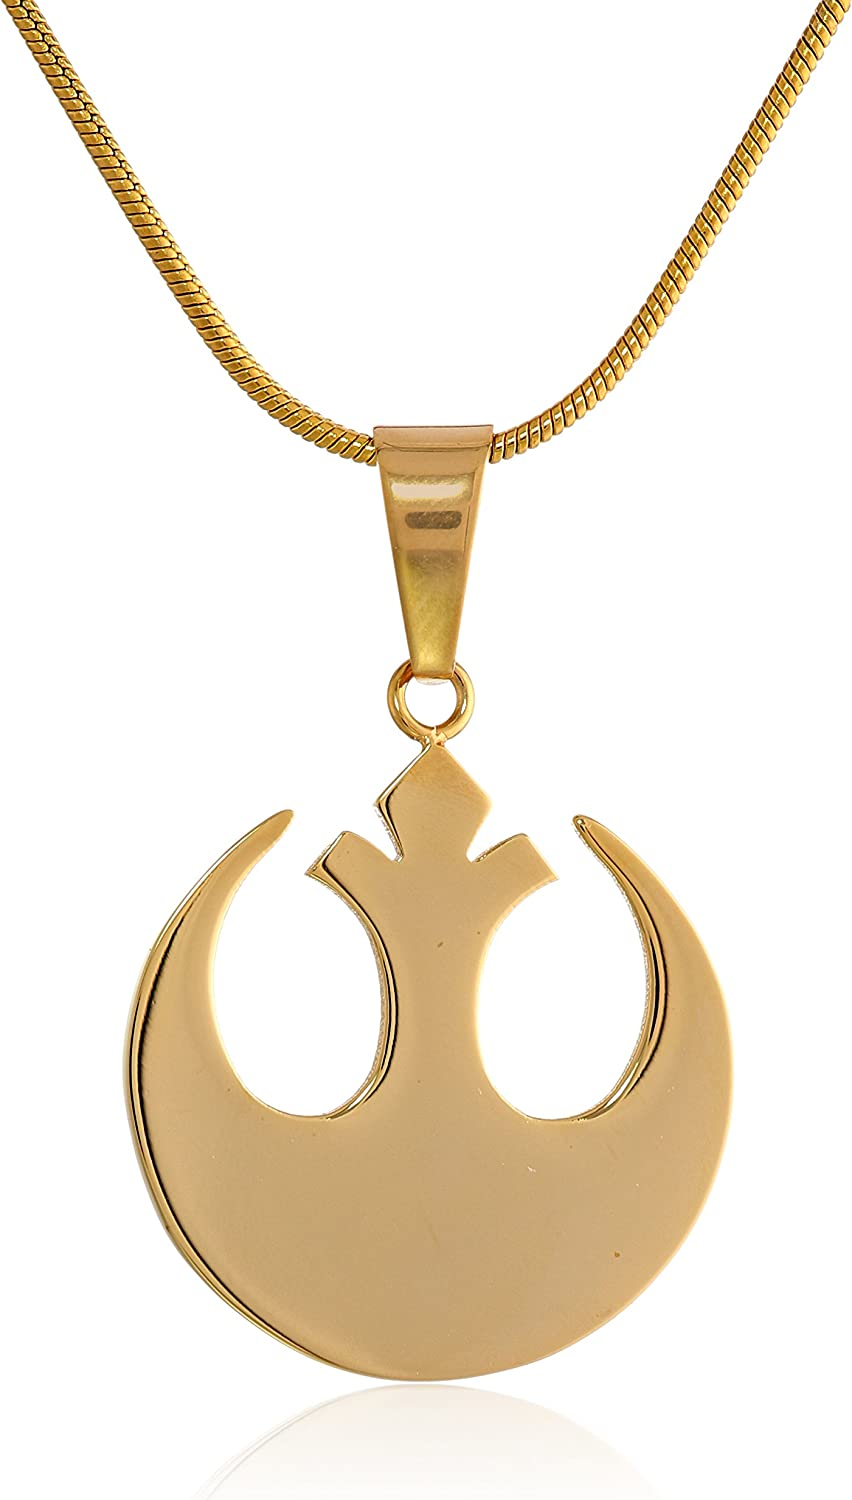 Star Wars Jewelry Unisex Rebel Alliance Stainless Steel Gold IP Small Chain Pendant Necklace (SALES1SWMD)